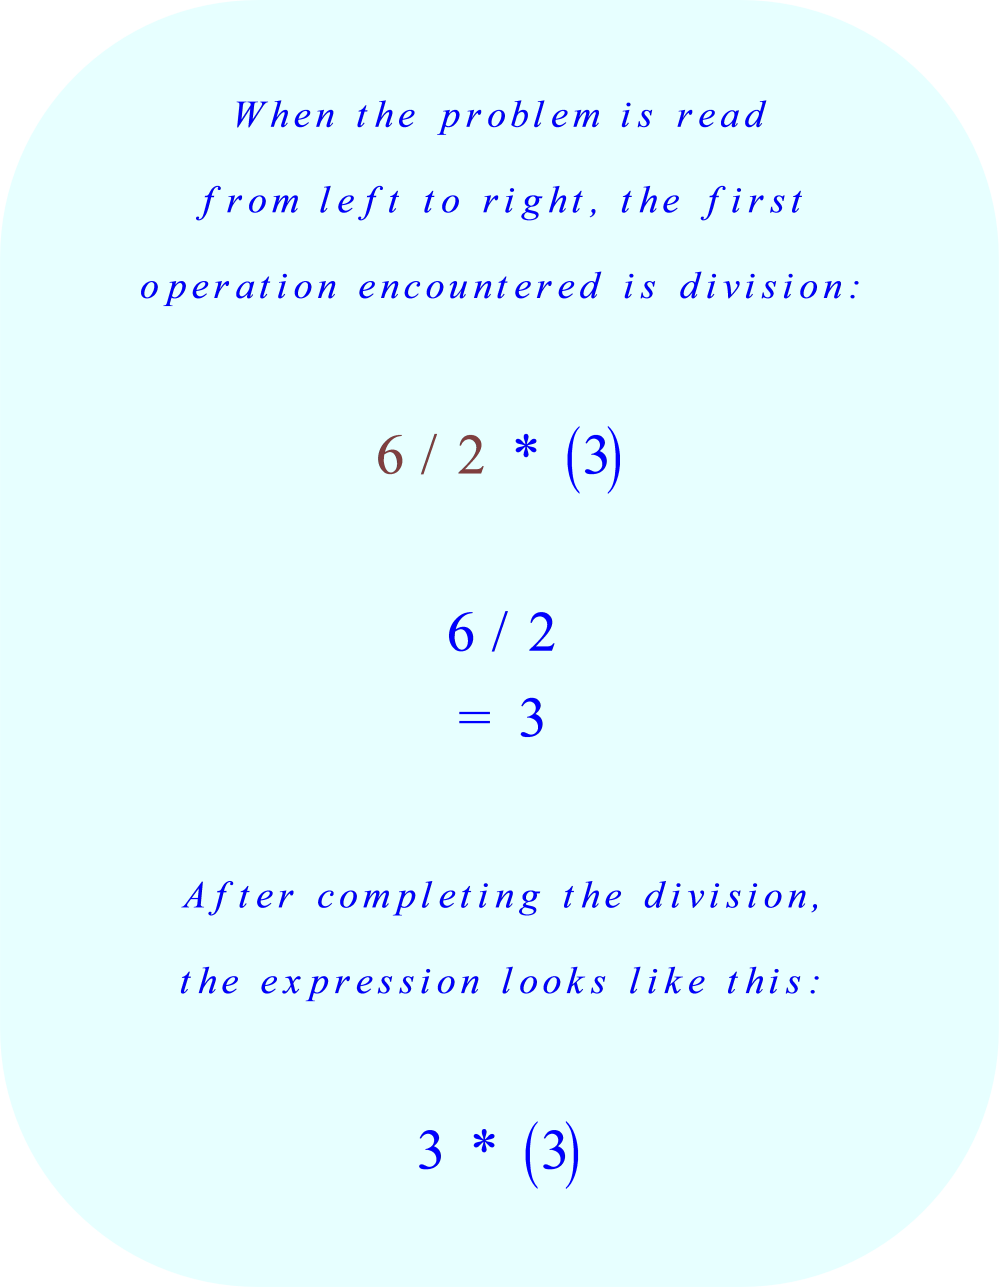 when reading from left to right, the first operation encountered is division